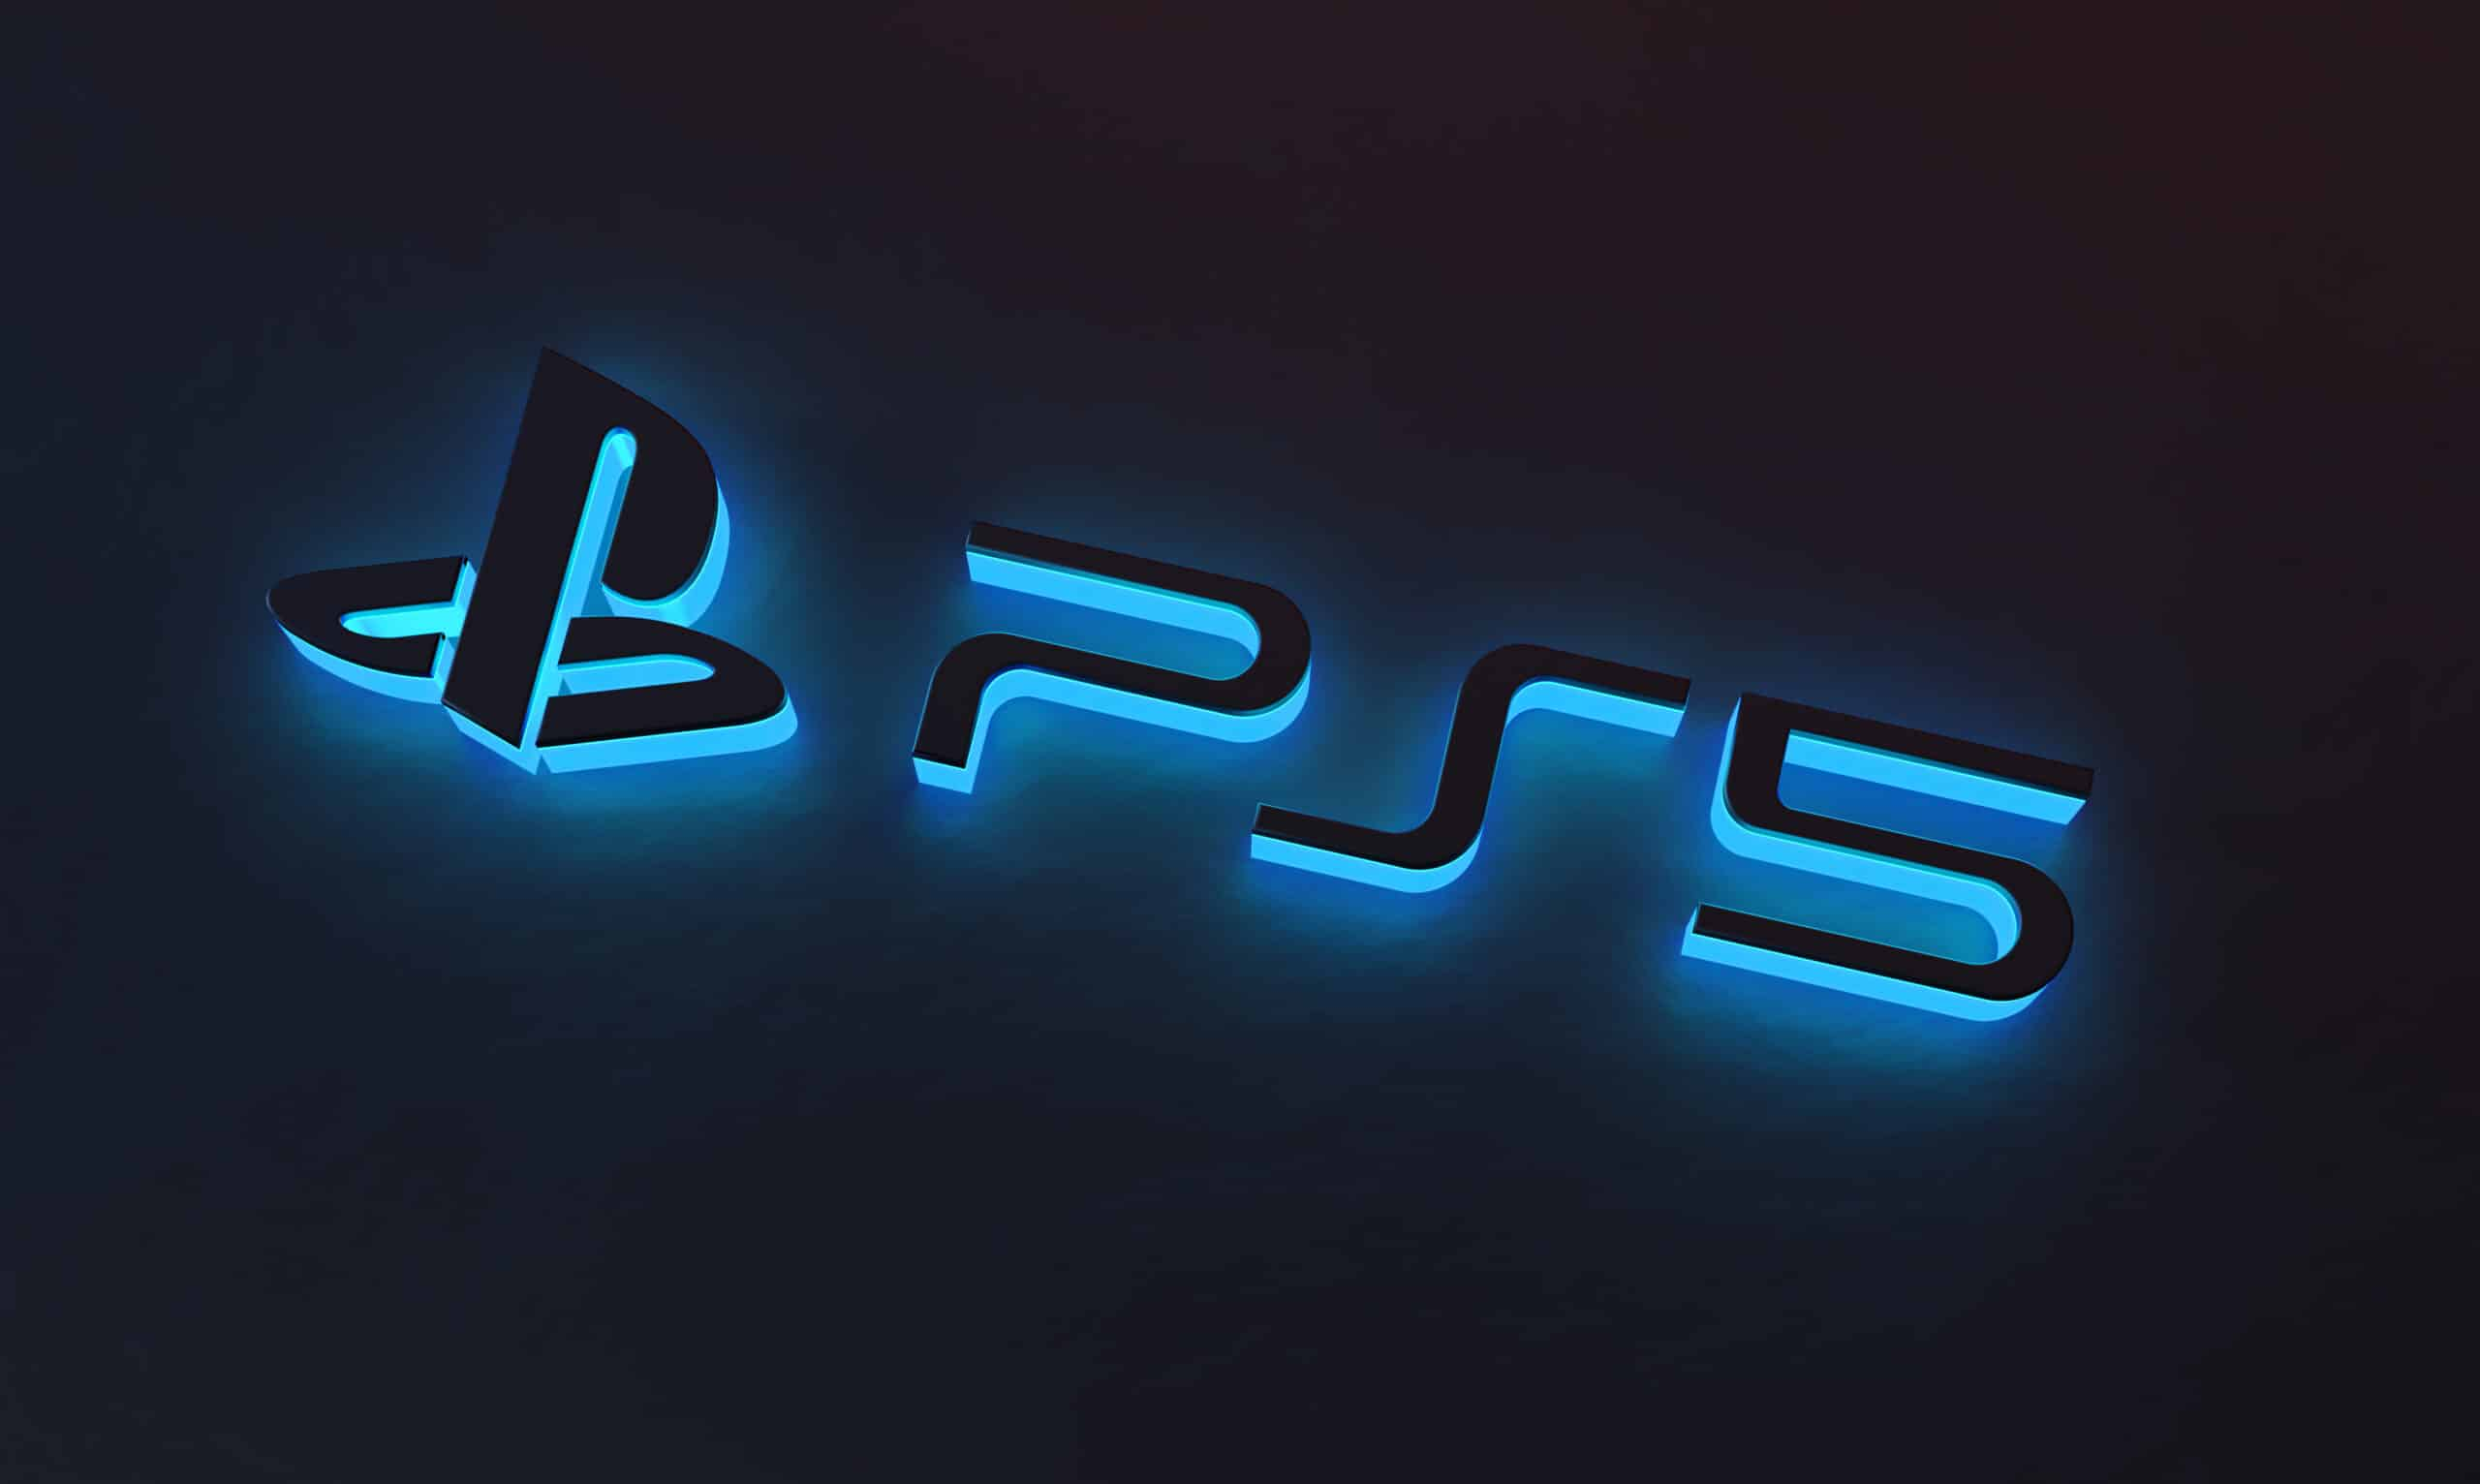 Logo/marca do Sony PlayStation 5 (PS5)